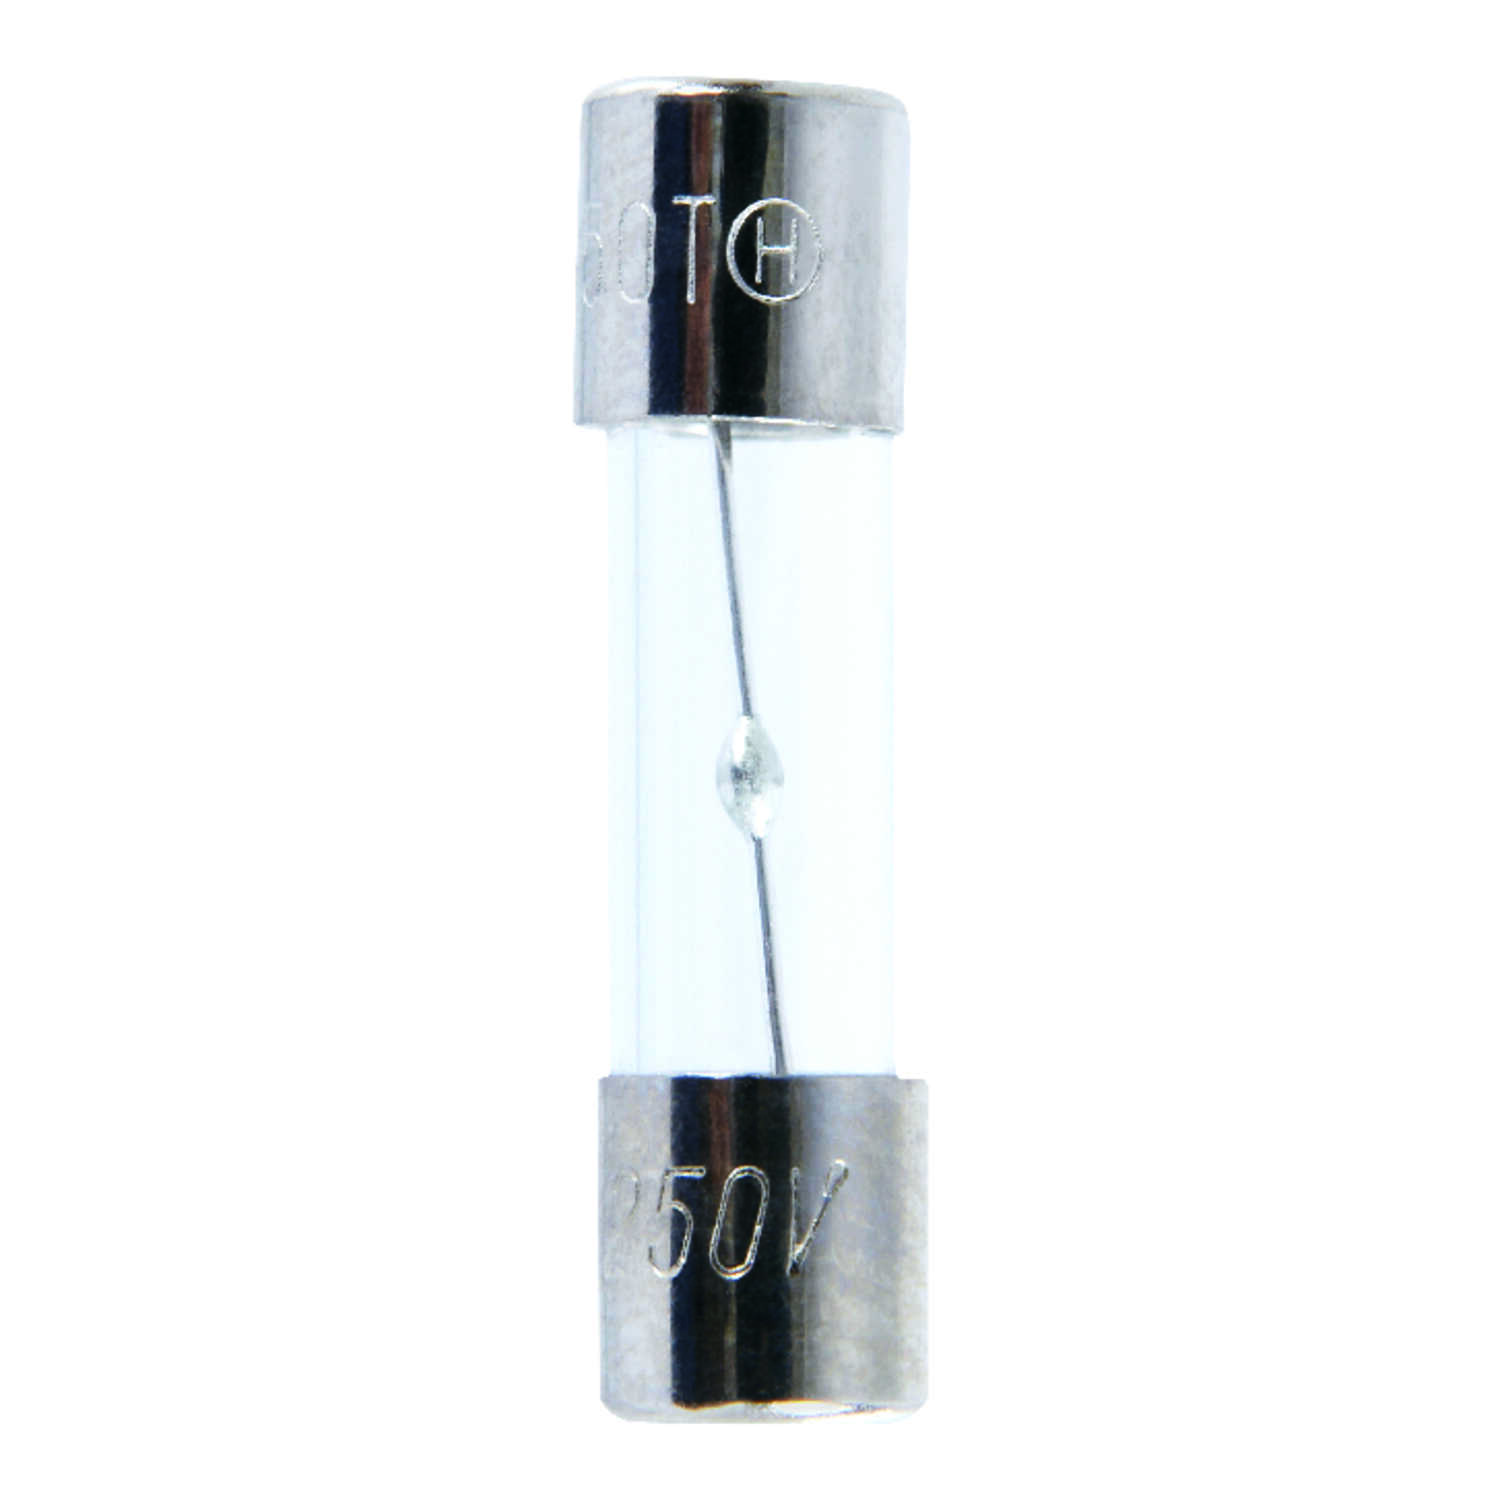 Jandorf  S506  10 amps 250 volts Glass  Time Delay Fuse  2 pk